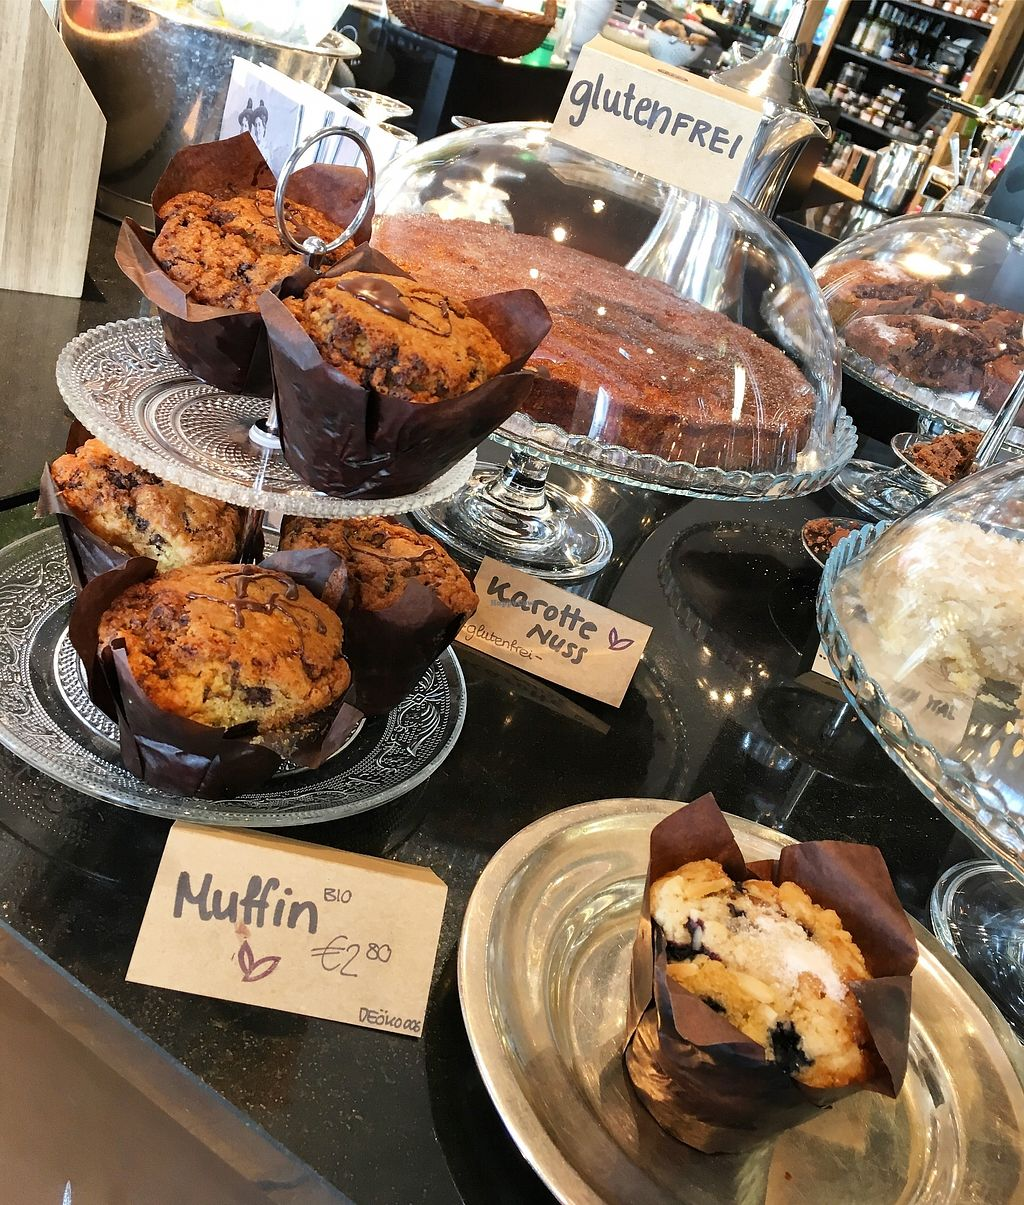 "Photo of Der Laden  by <a href=""/members/profile/Derladengap"">Derladengap</a> <br/>Vegan Muffins  <br/> November 1, 2017  - <a href='/contact/abuse/image/103673/320939'>Report</a>"